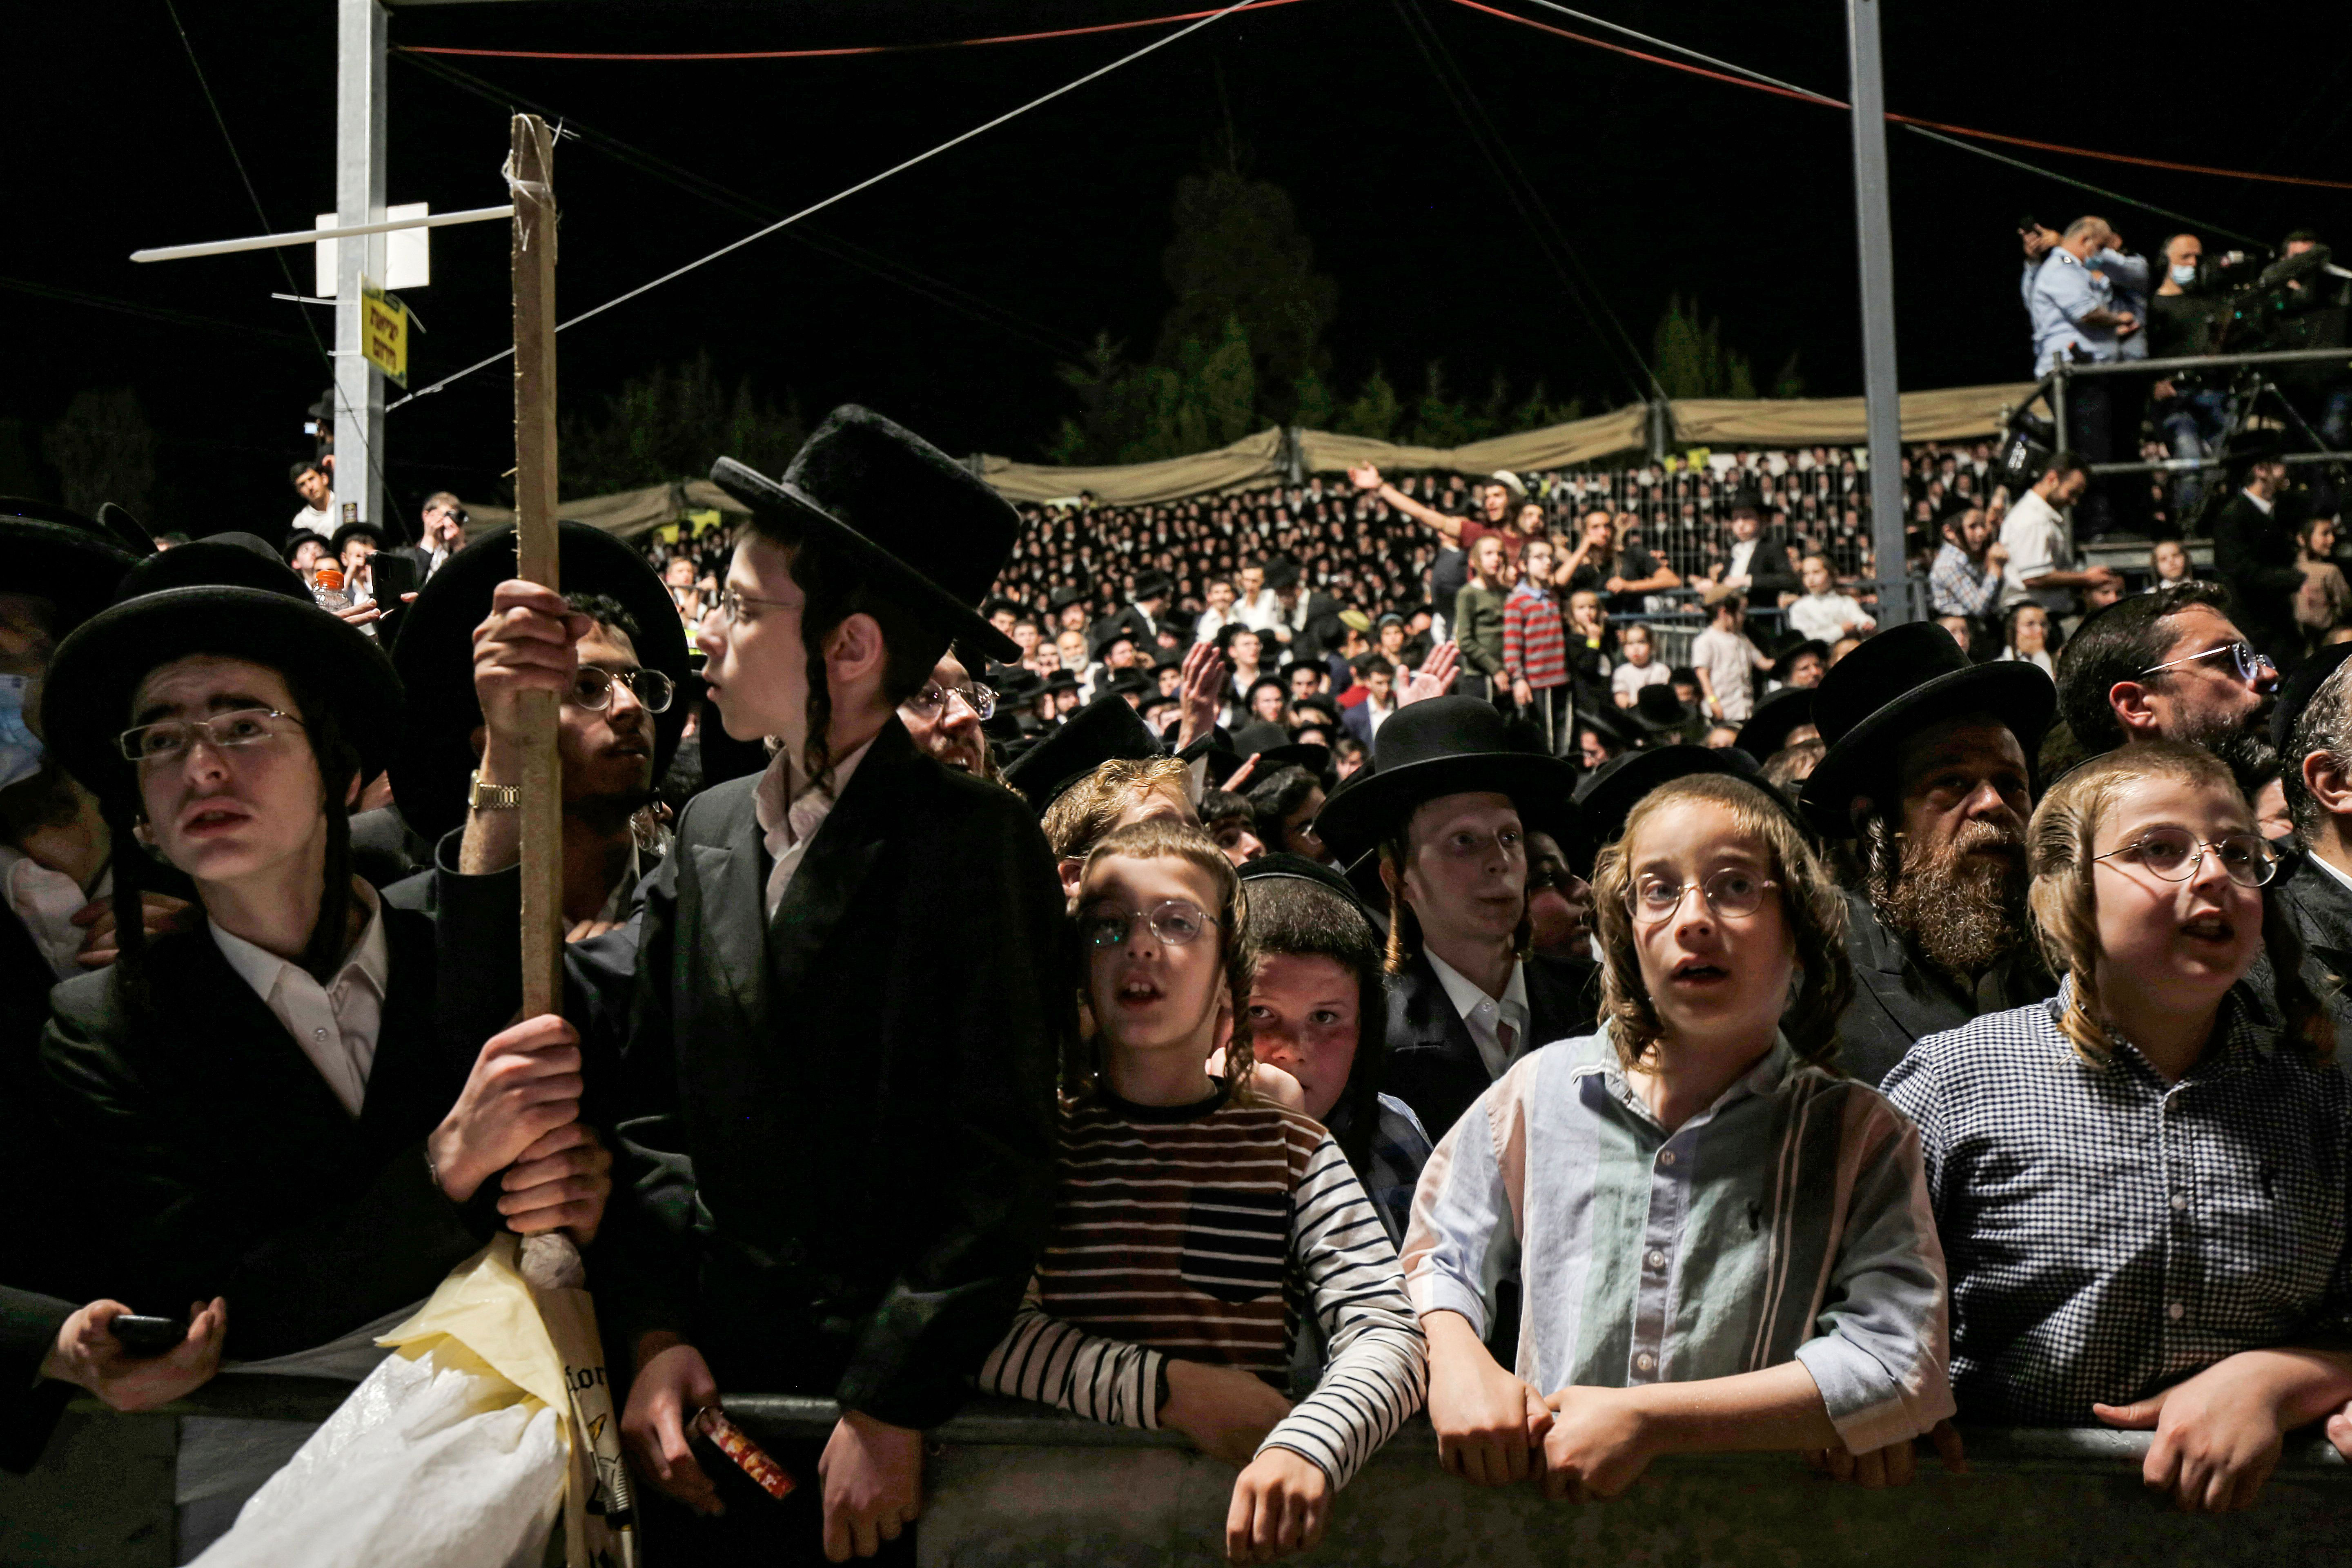 Ultra-Orthodox Jews gather at the site where RabbiShimon Bar Yochai is thought to be buried at Mount Meron in northern Israel on Thursday night.